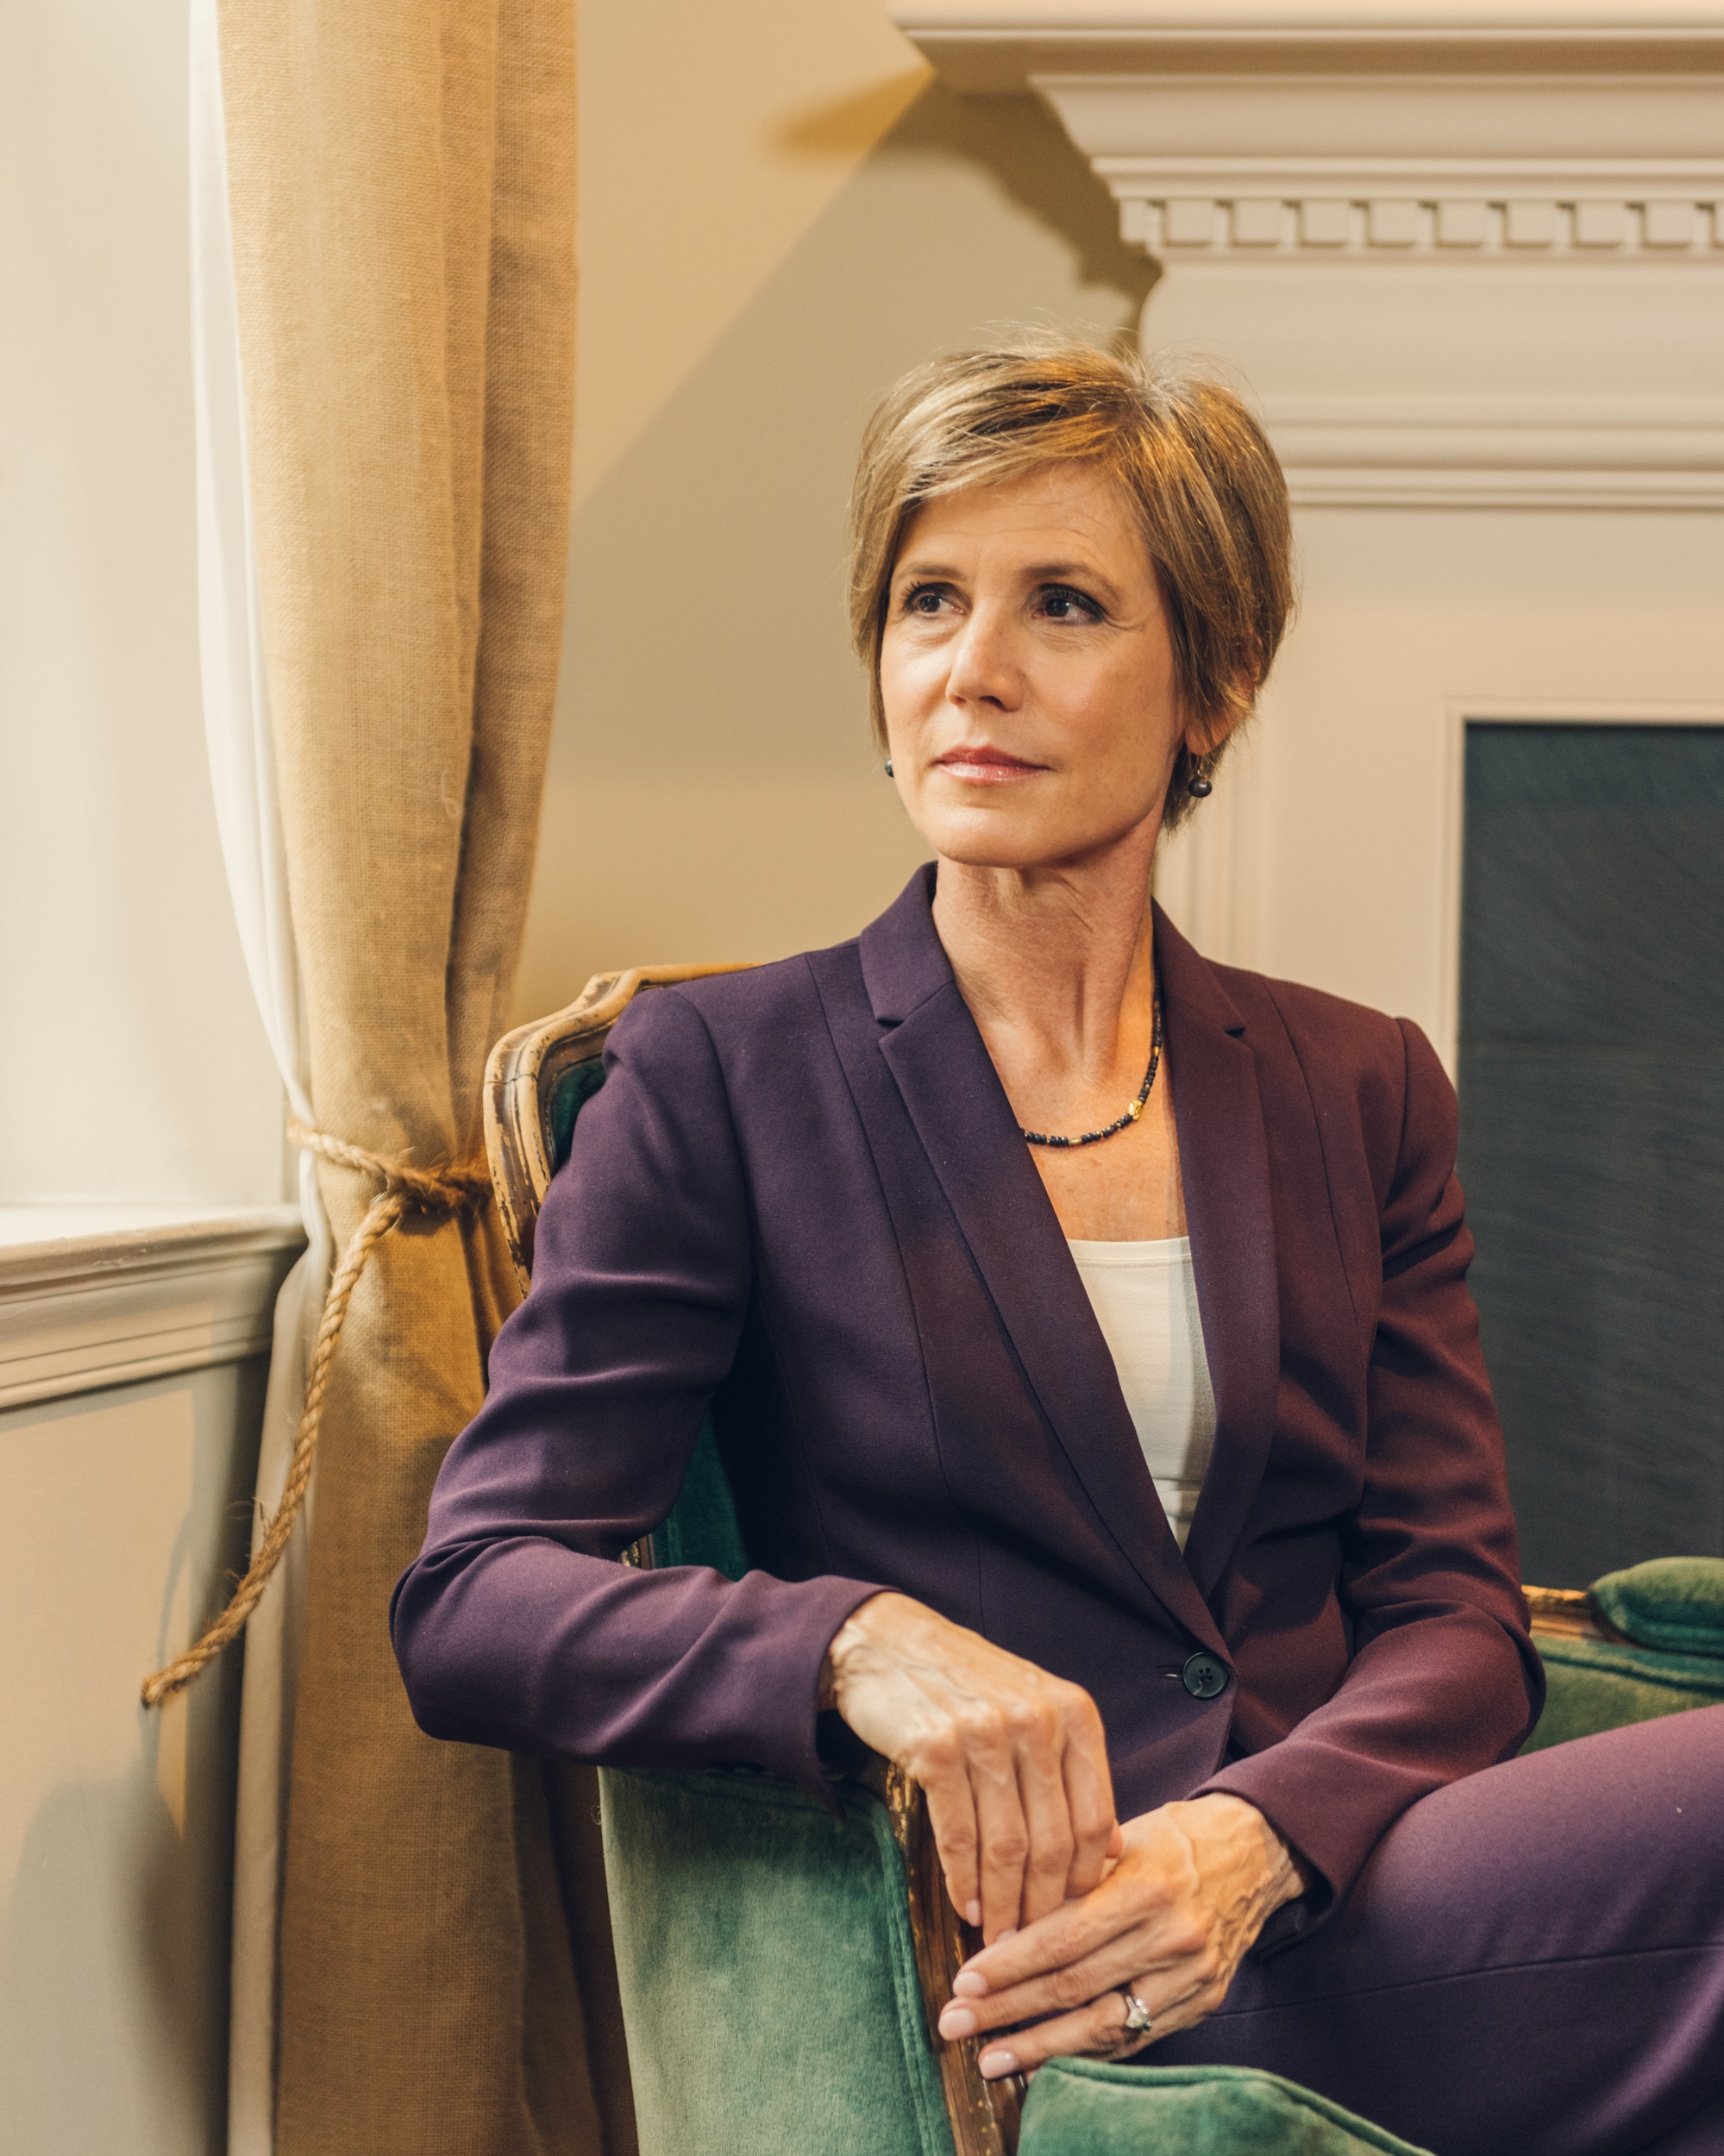 sally_yates_011-2